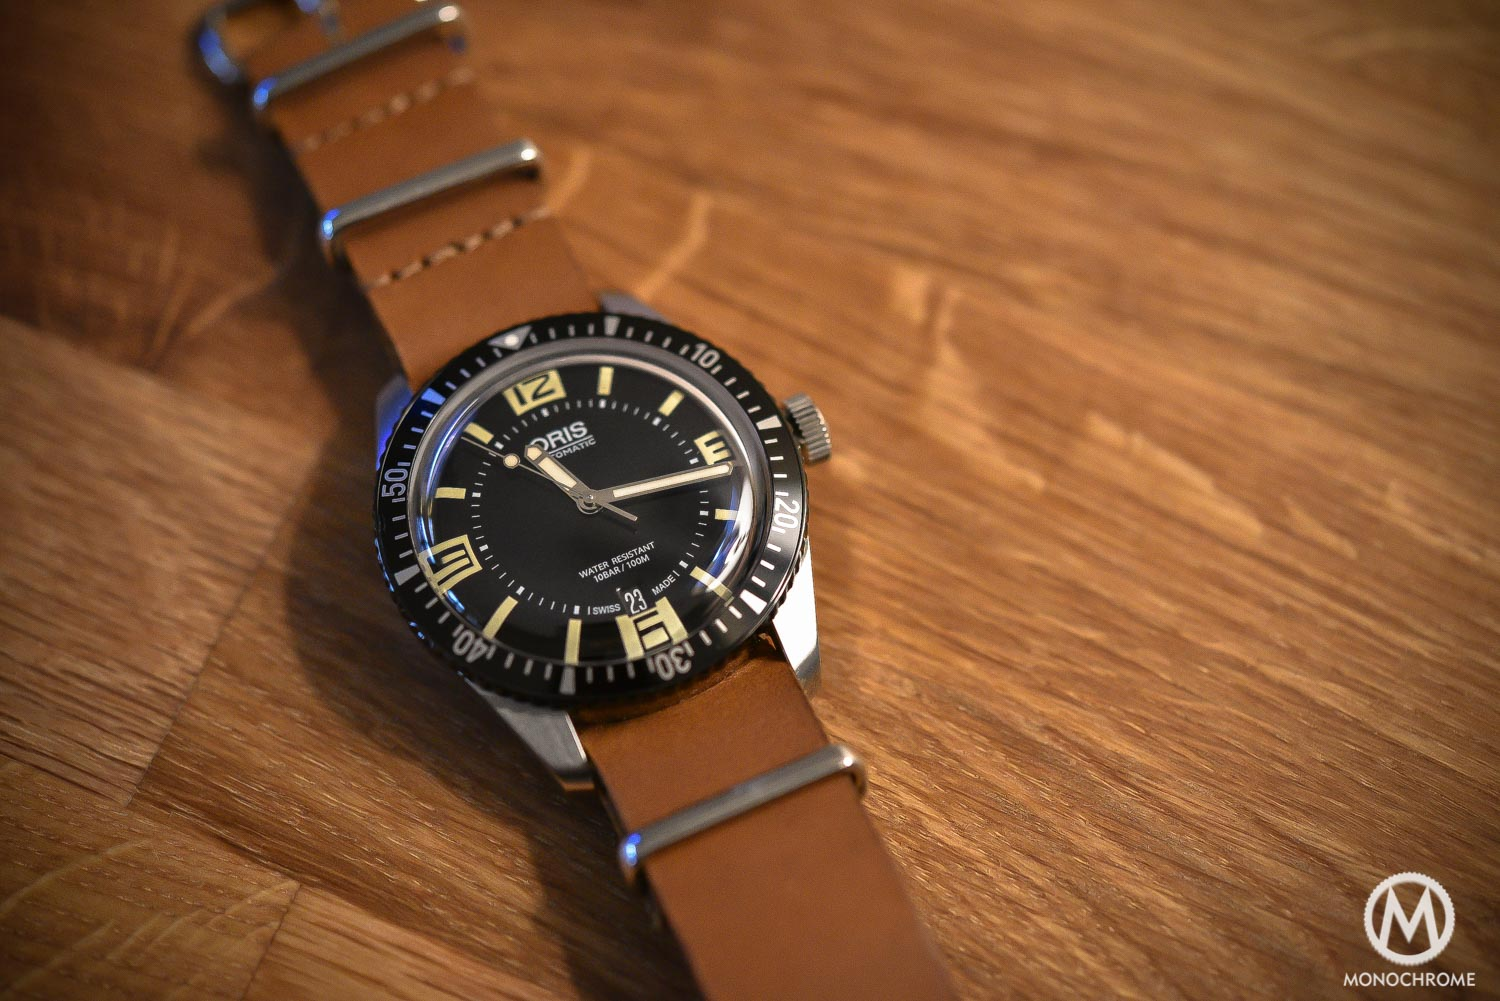 Oris Divers Sixty Five 65 - Collectors series - review